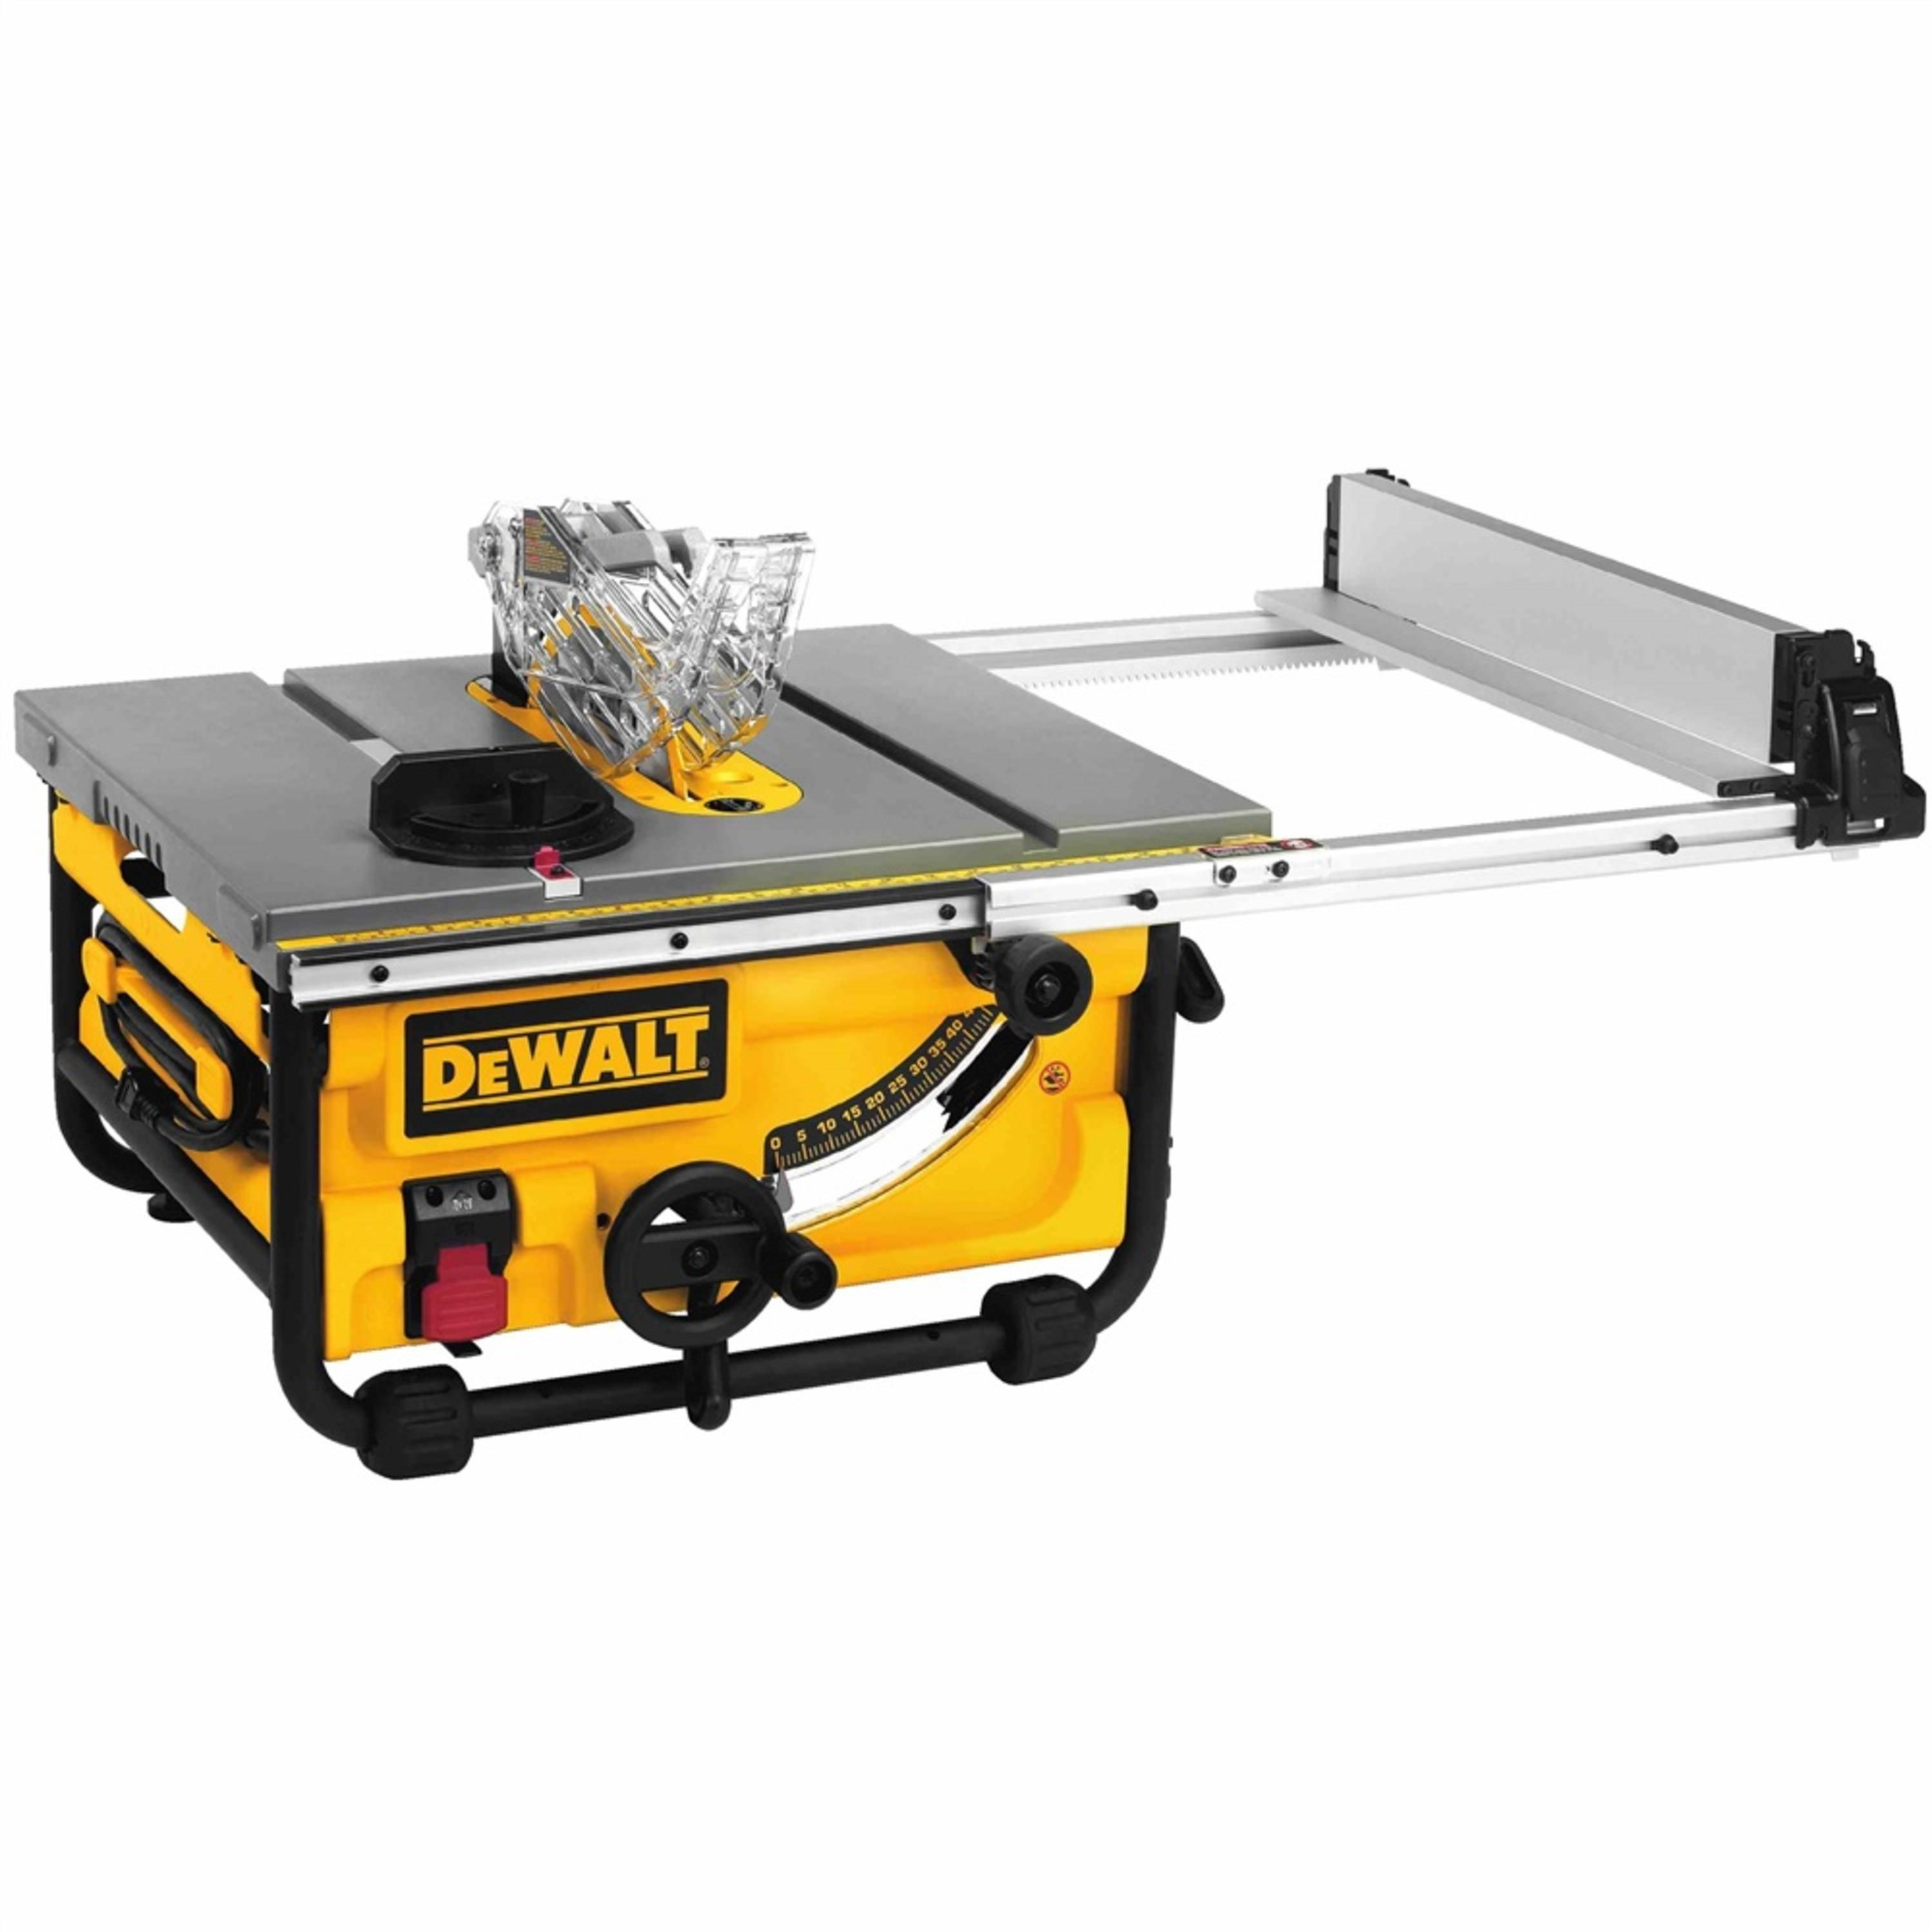 Dewalt Dwe7480 10 In Compact Job Site Table Saw 229 Tax Amazon Fs W Prime Up To 10 Cash Back Jobsite Table Saw Table Saw Woodworking Table Saw